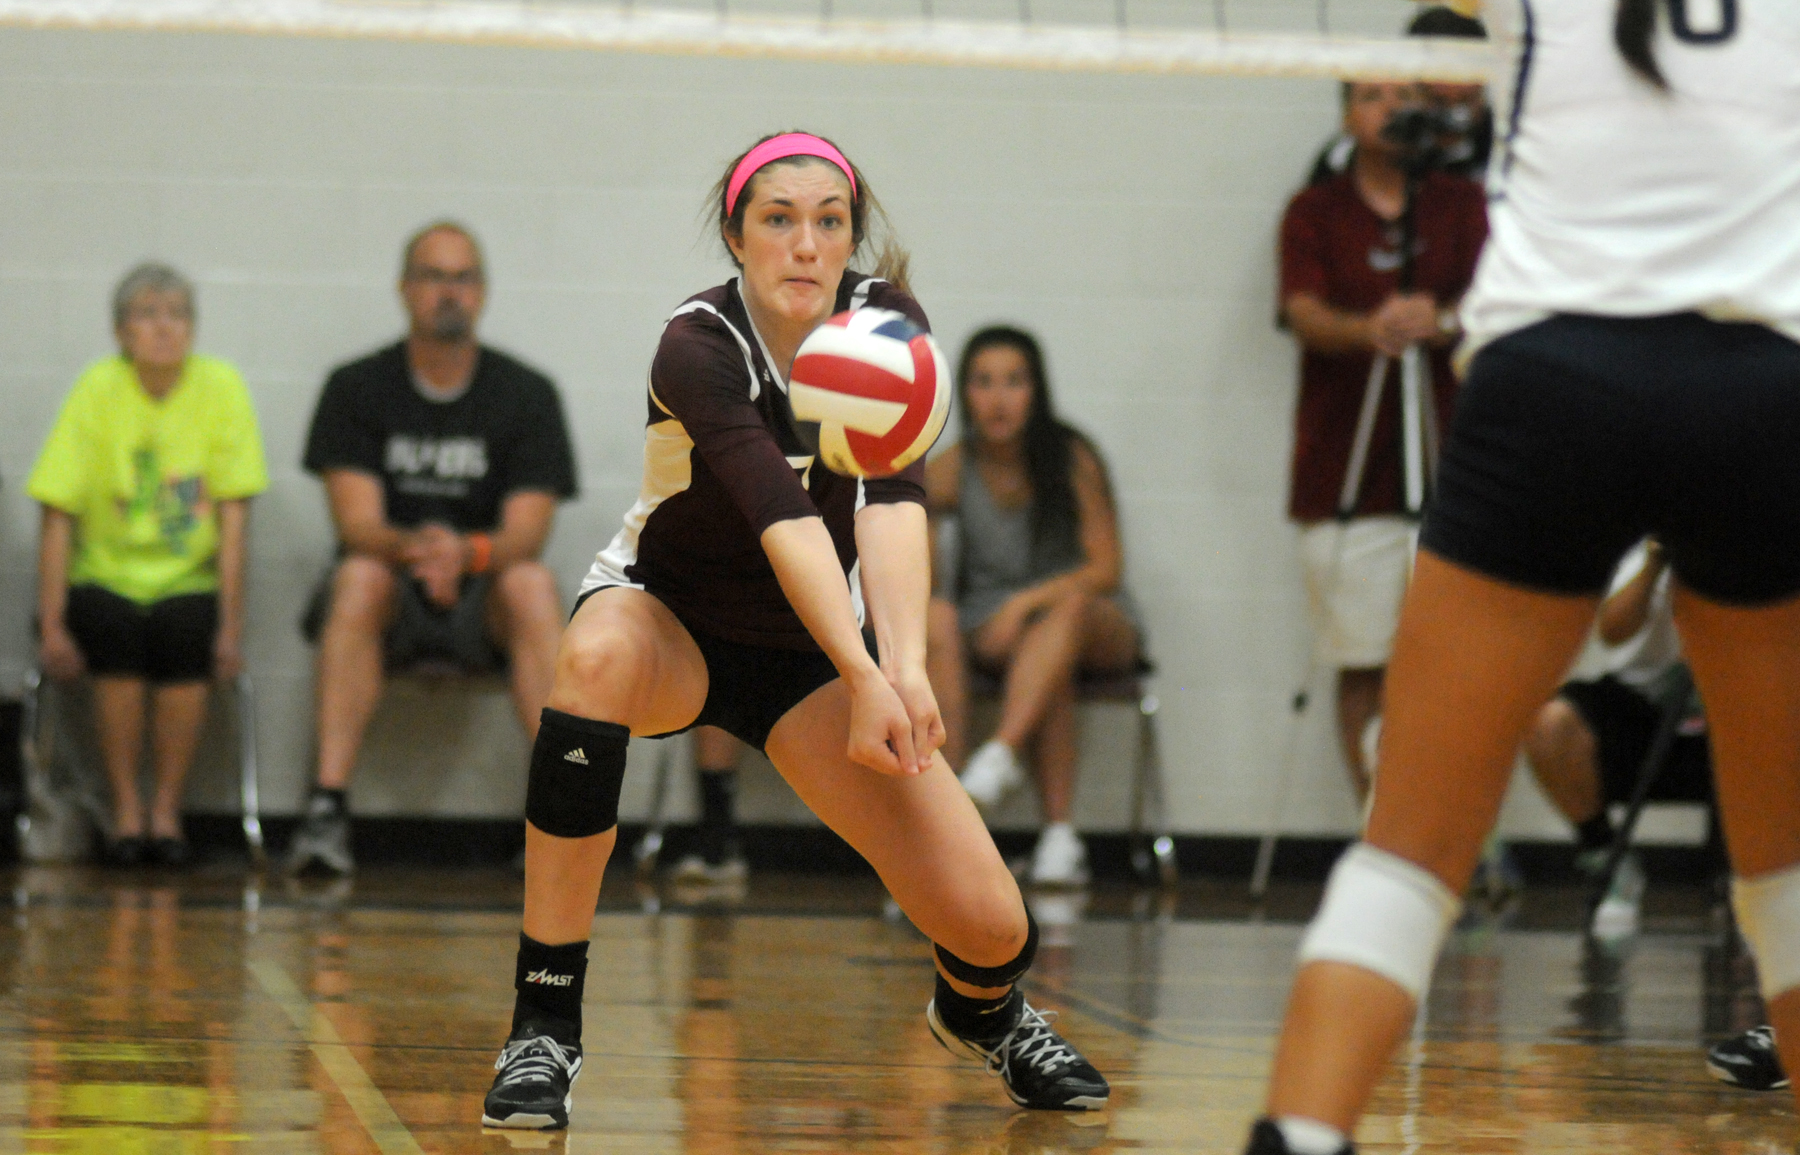 sky u0026 39 s the limit for botkin  pearland volleyball team